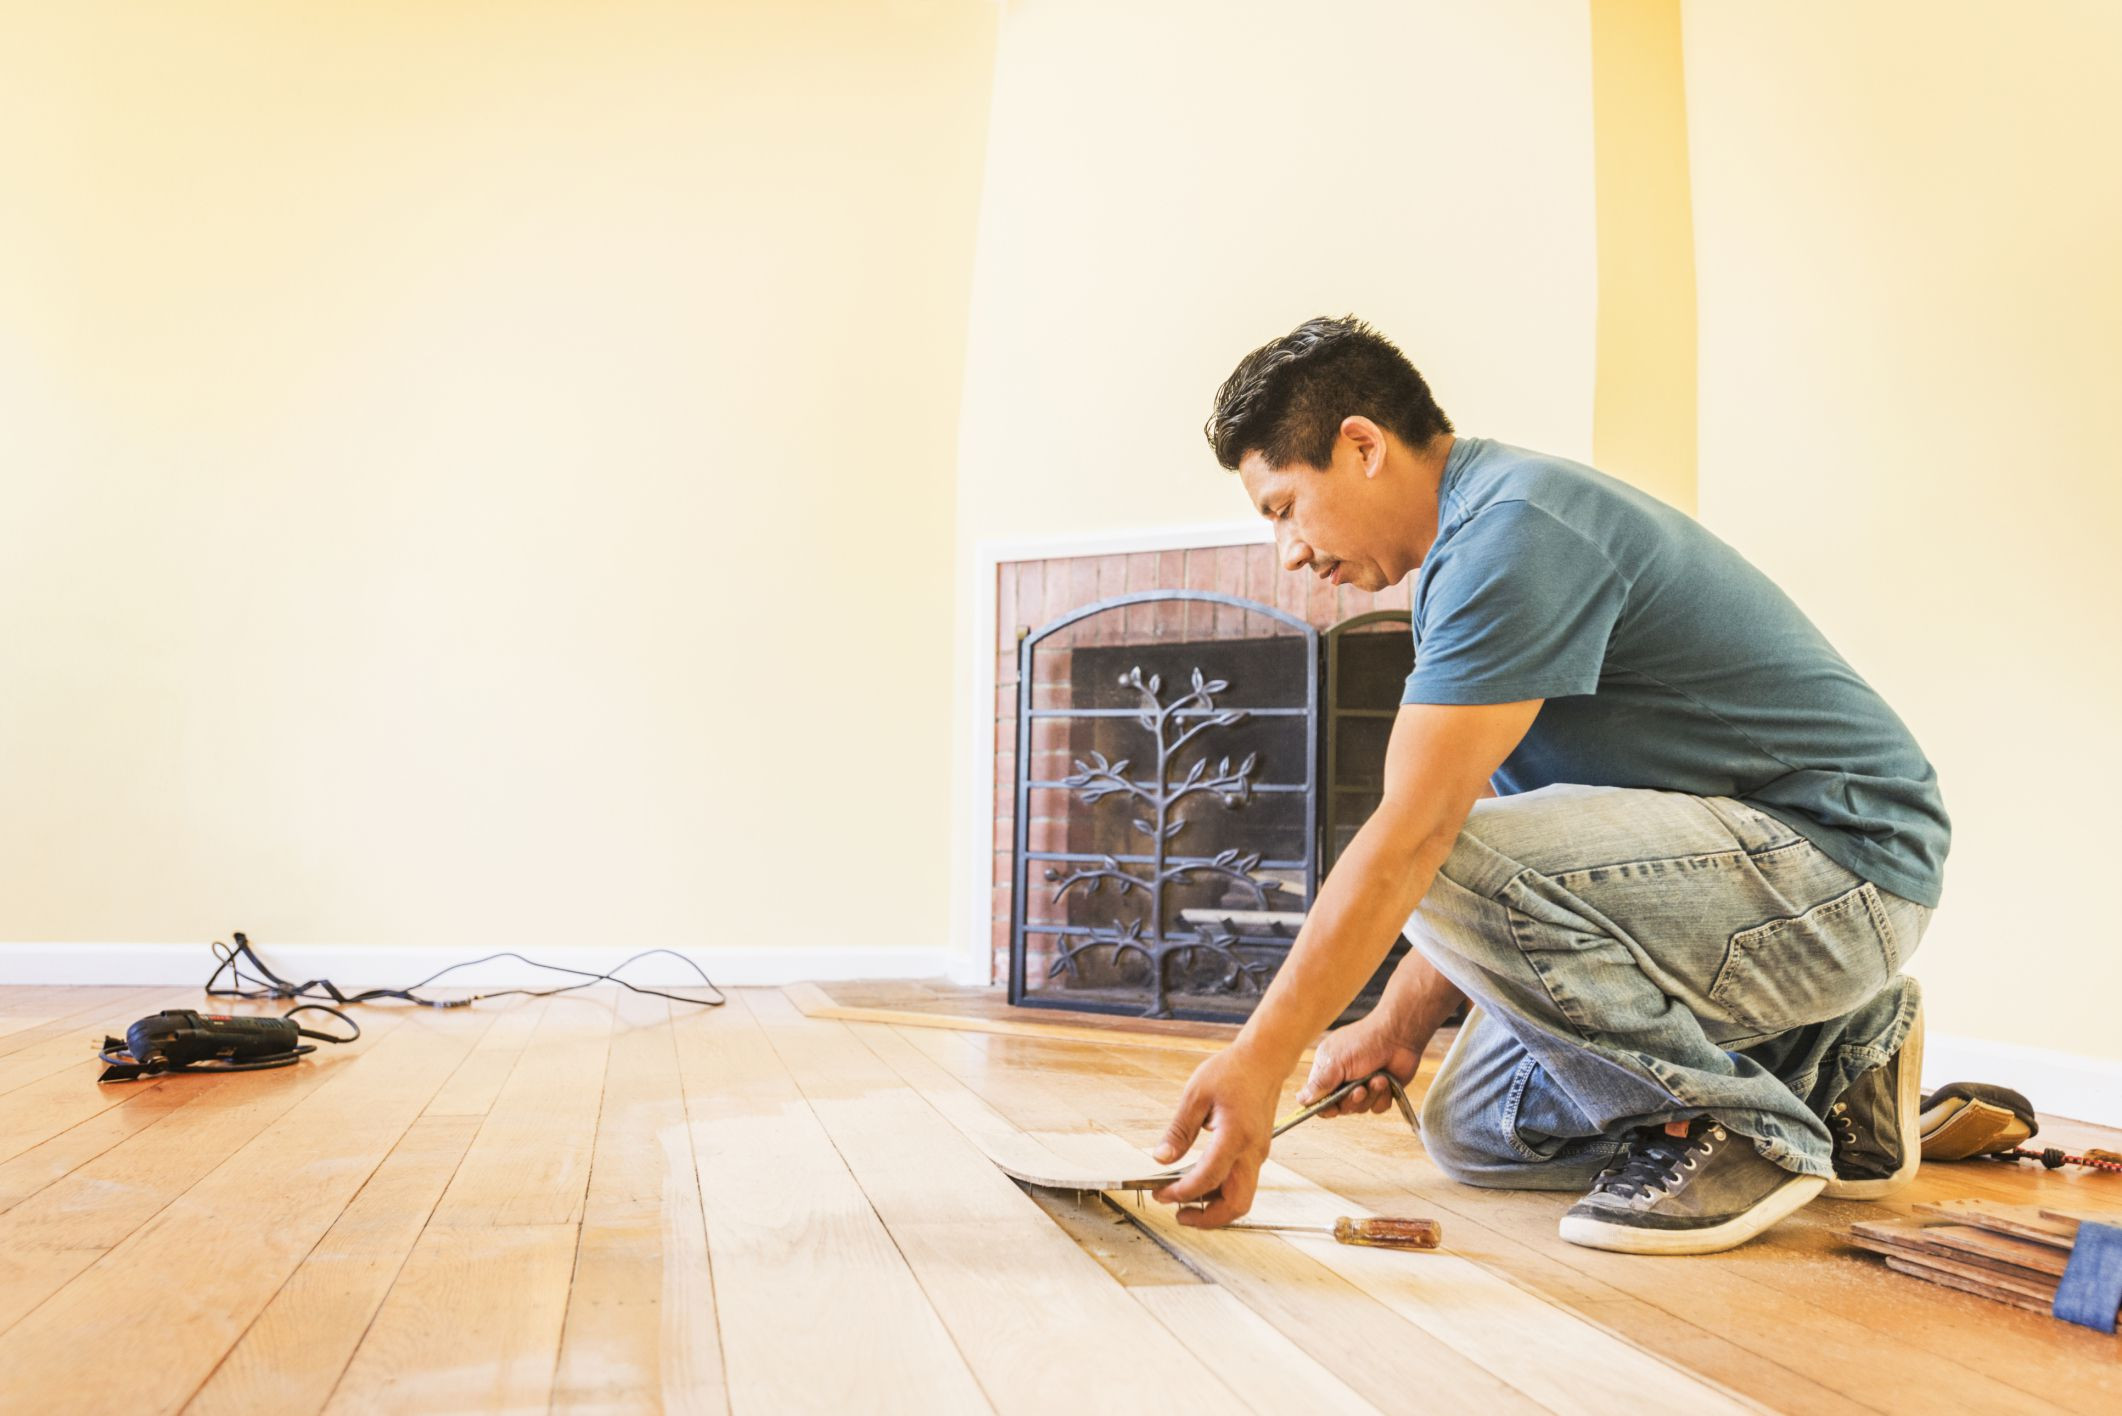 discount engineered hardwood flooring prices of solid hardwood flooring costs for professional vs diy pertaining to installwoodflooring 592016327 56684d6f3df78ce1610a598a